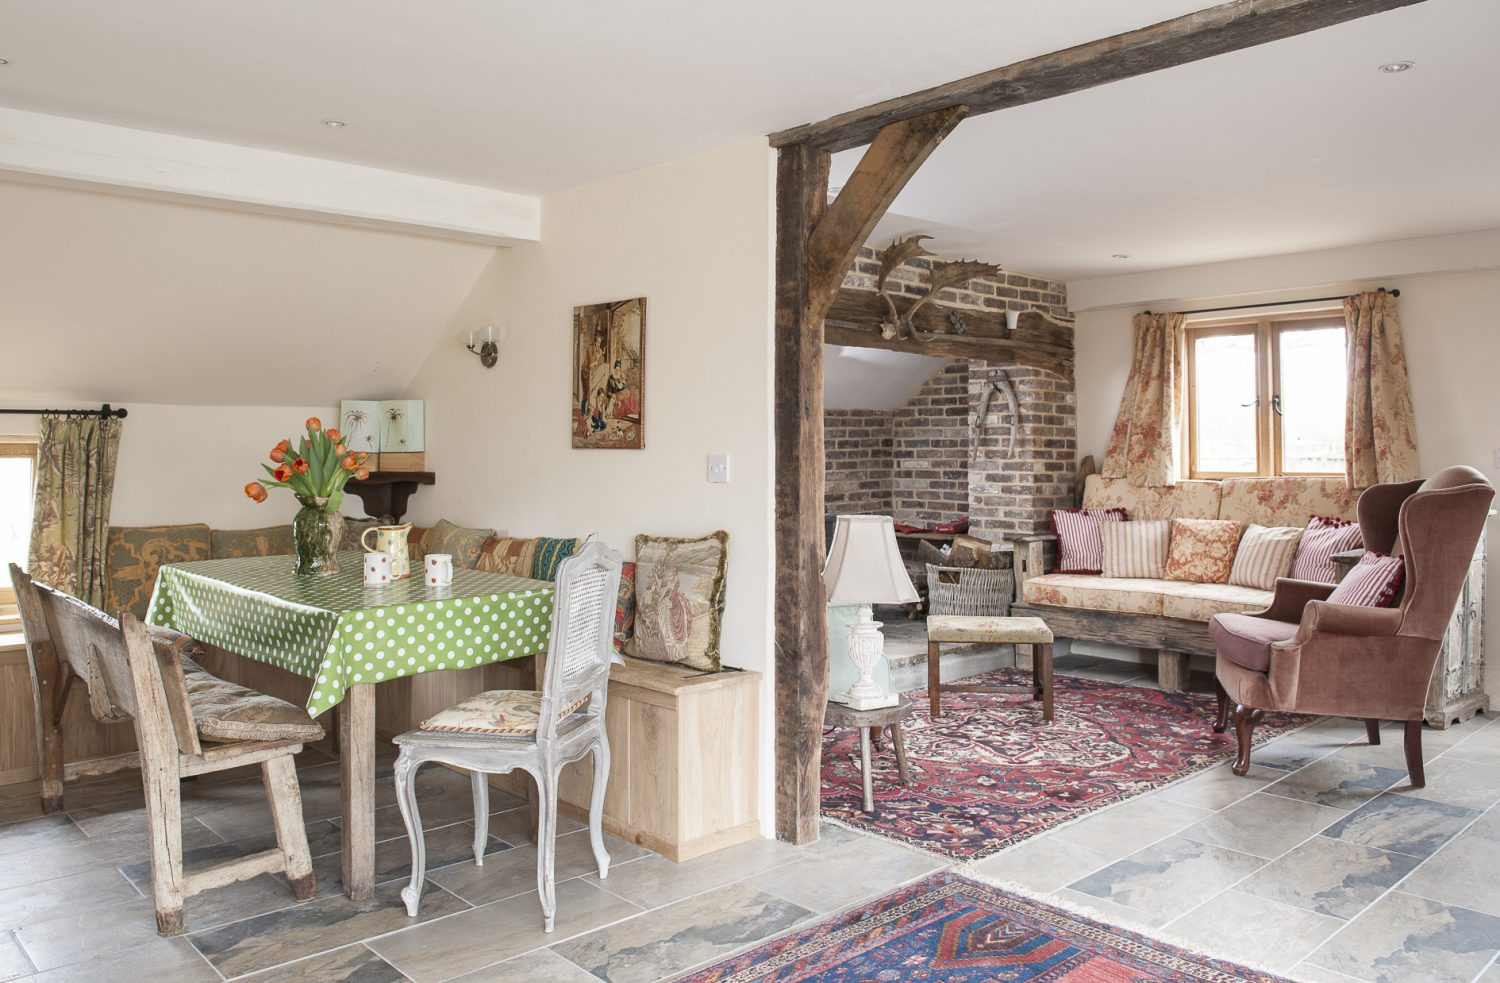 The sitting room sofa is made from driftwood from Hastings and was crafted by Caroline's favourite joiner Colin Smith and cushioned in floral fabric from Beaumont & Fletcher